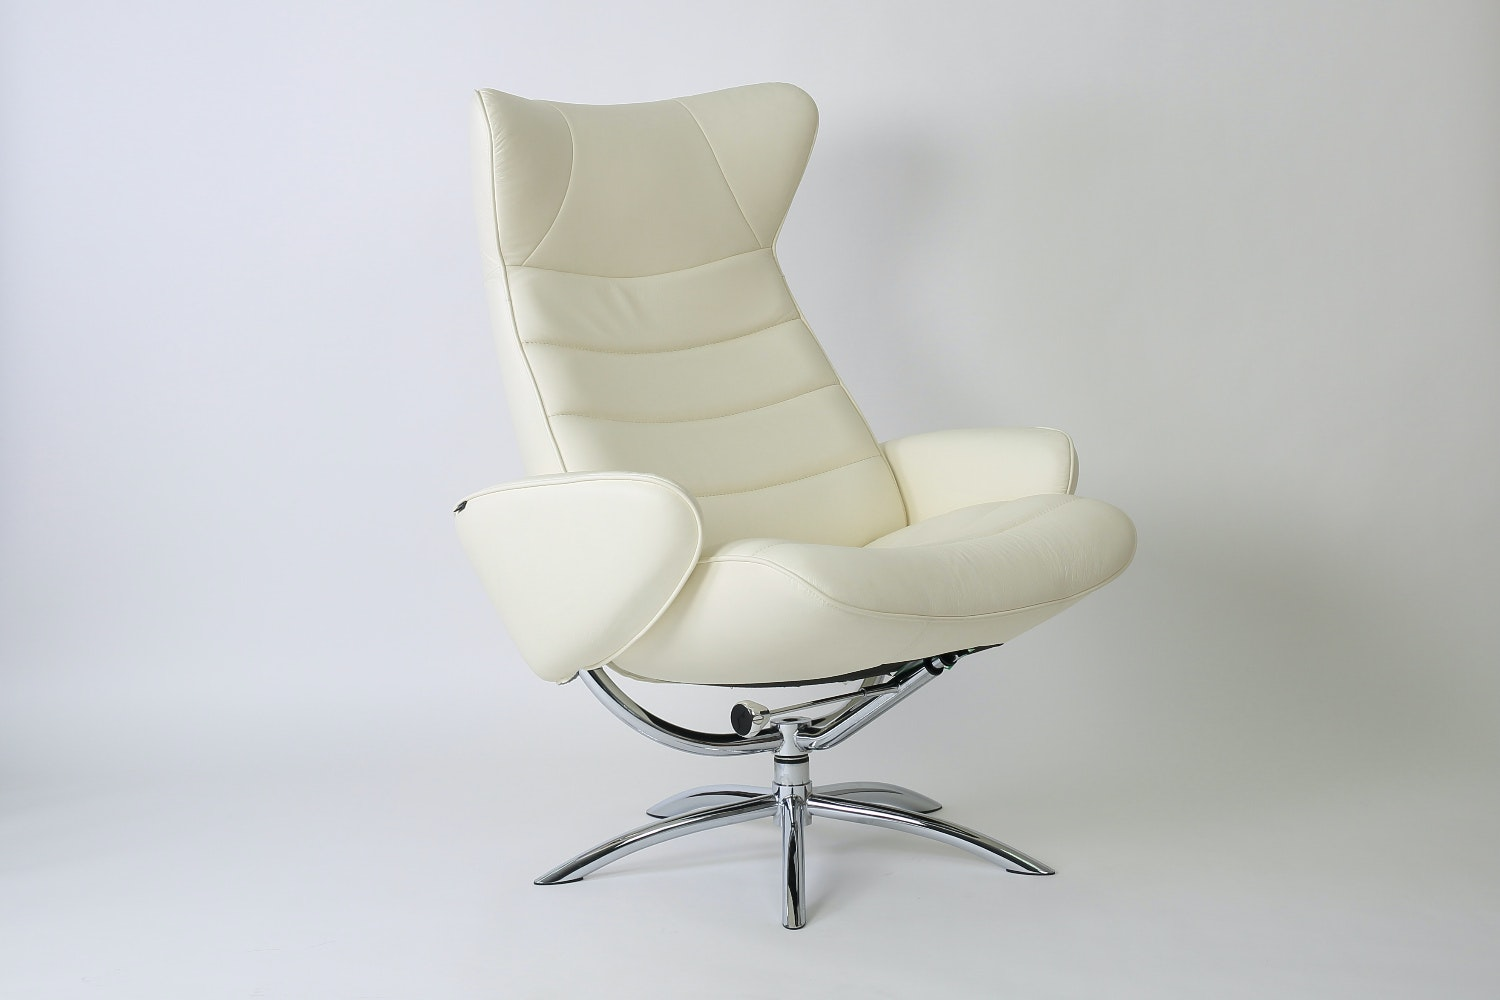 Chelsea Leather Chair and Footstool